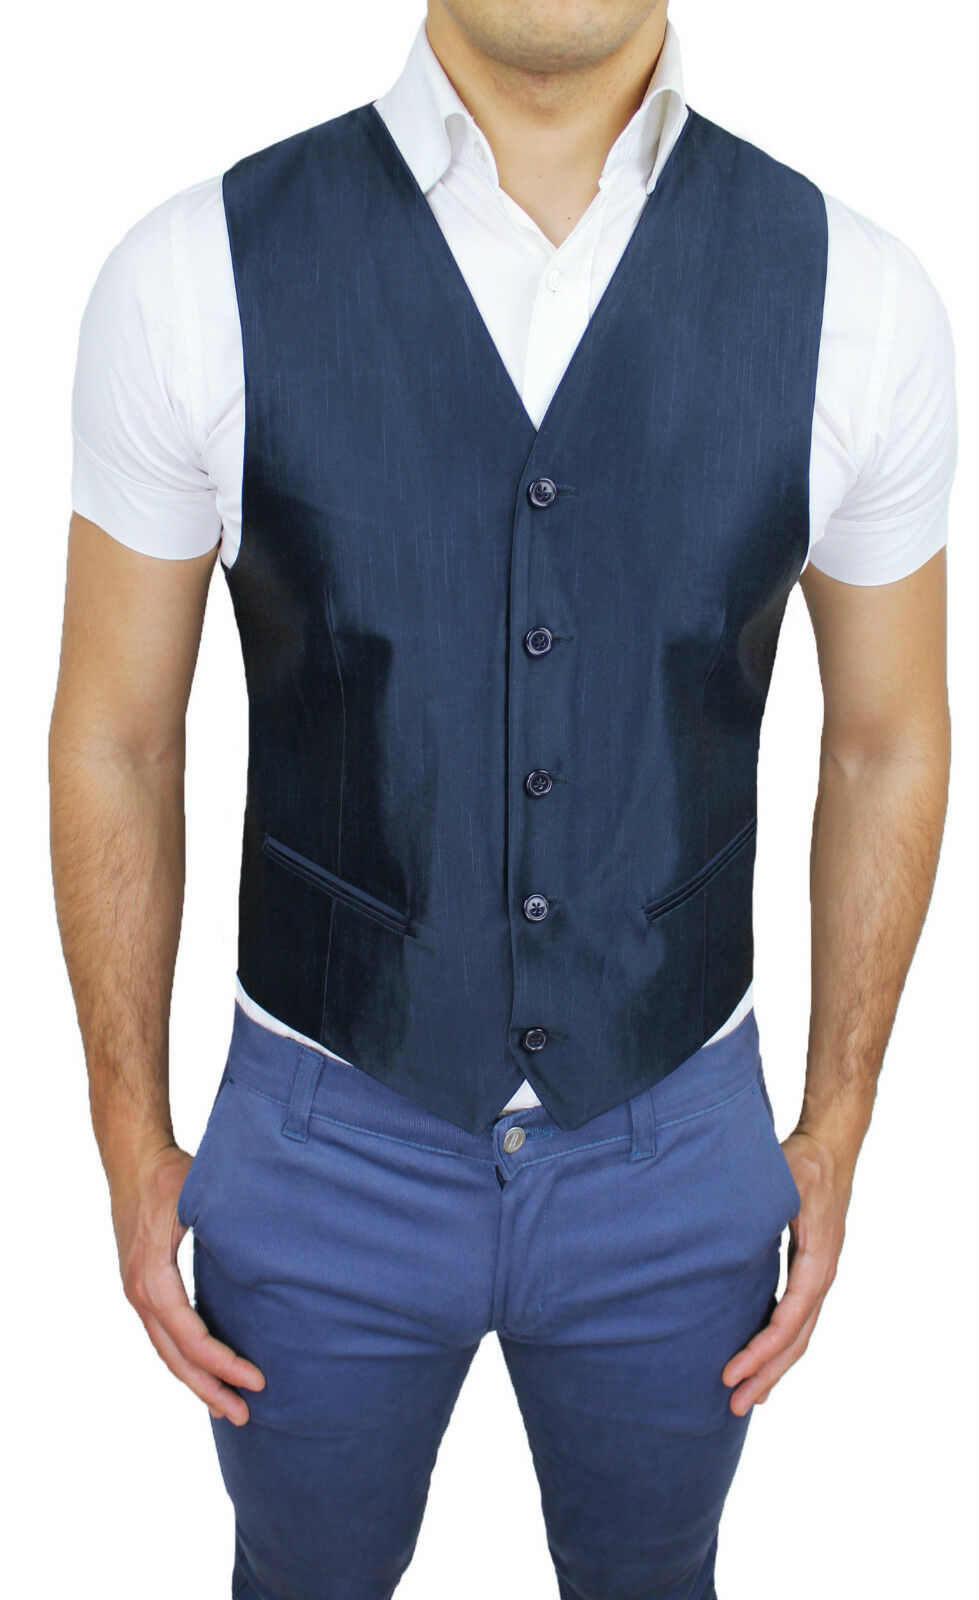 VEST WAISTCOAT MAN DIAMOND CLASS DARK blueE FORMAL ELEGANTE 100% MADE IN ITALY